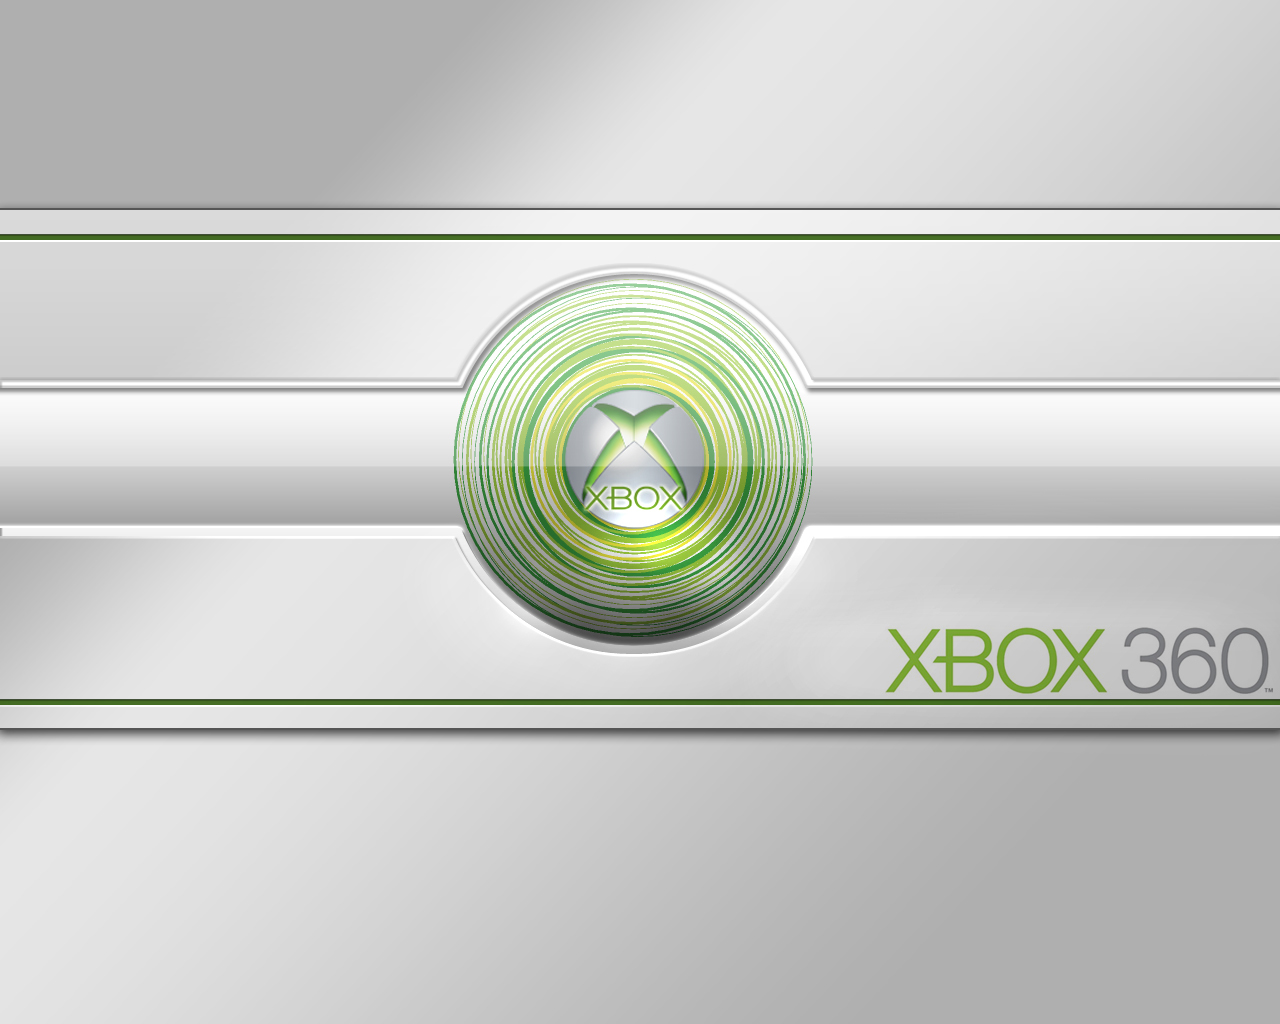 xbox just Got New HD Wallpaper